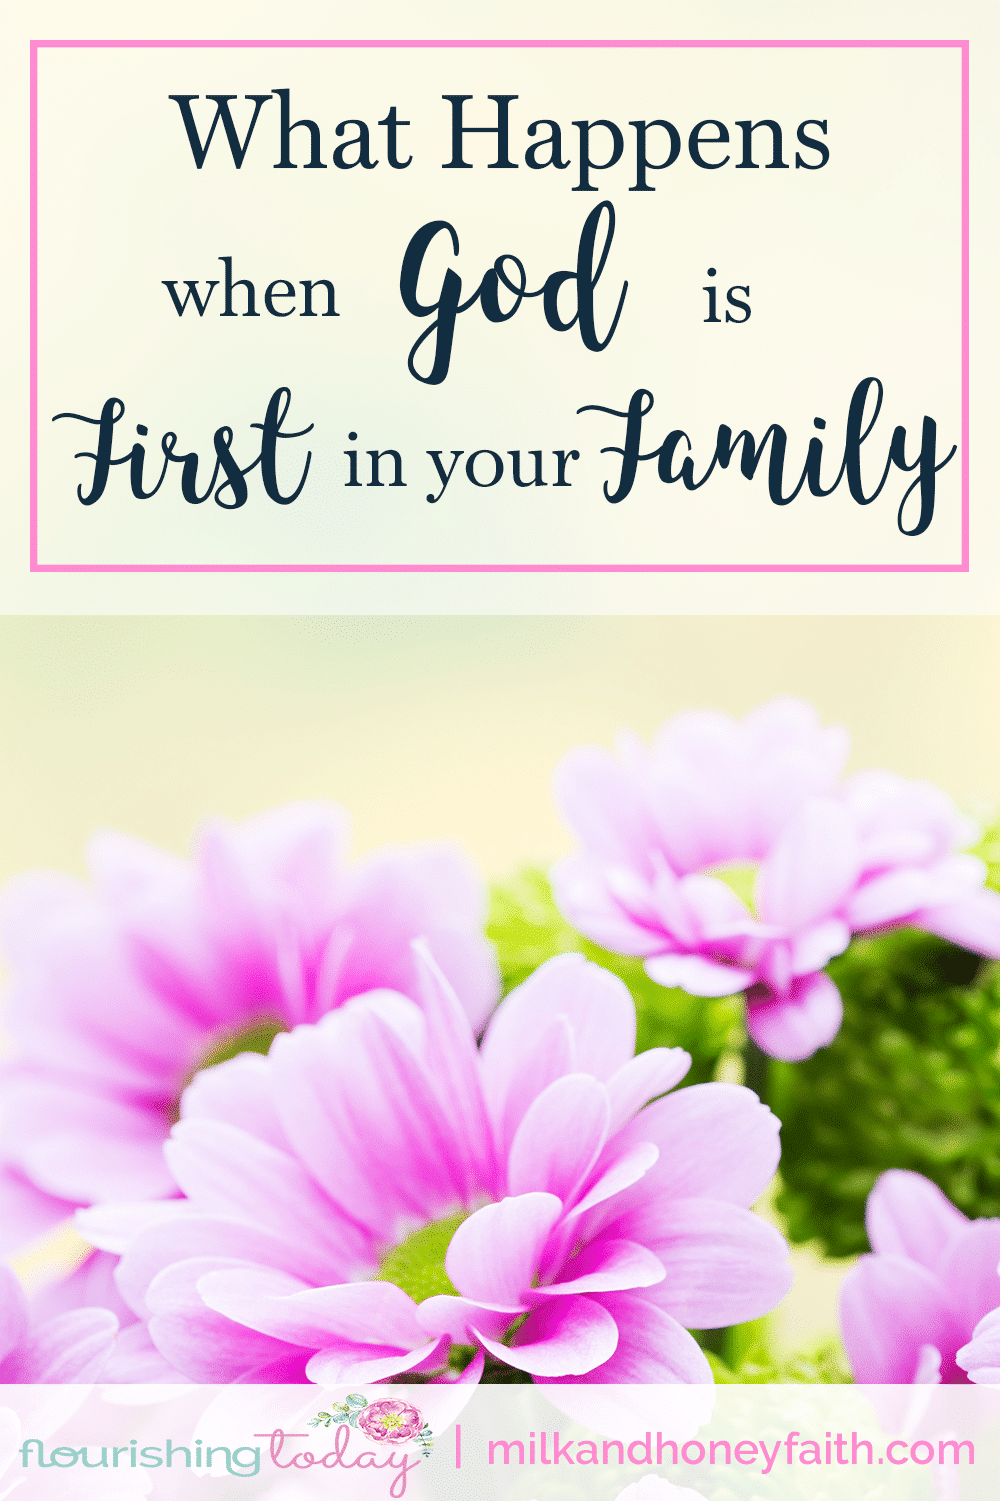 Do you place God first in family? Placing Him first above our families actually protects them from major issues. Here's what happens when you put God first.